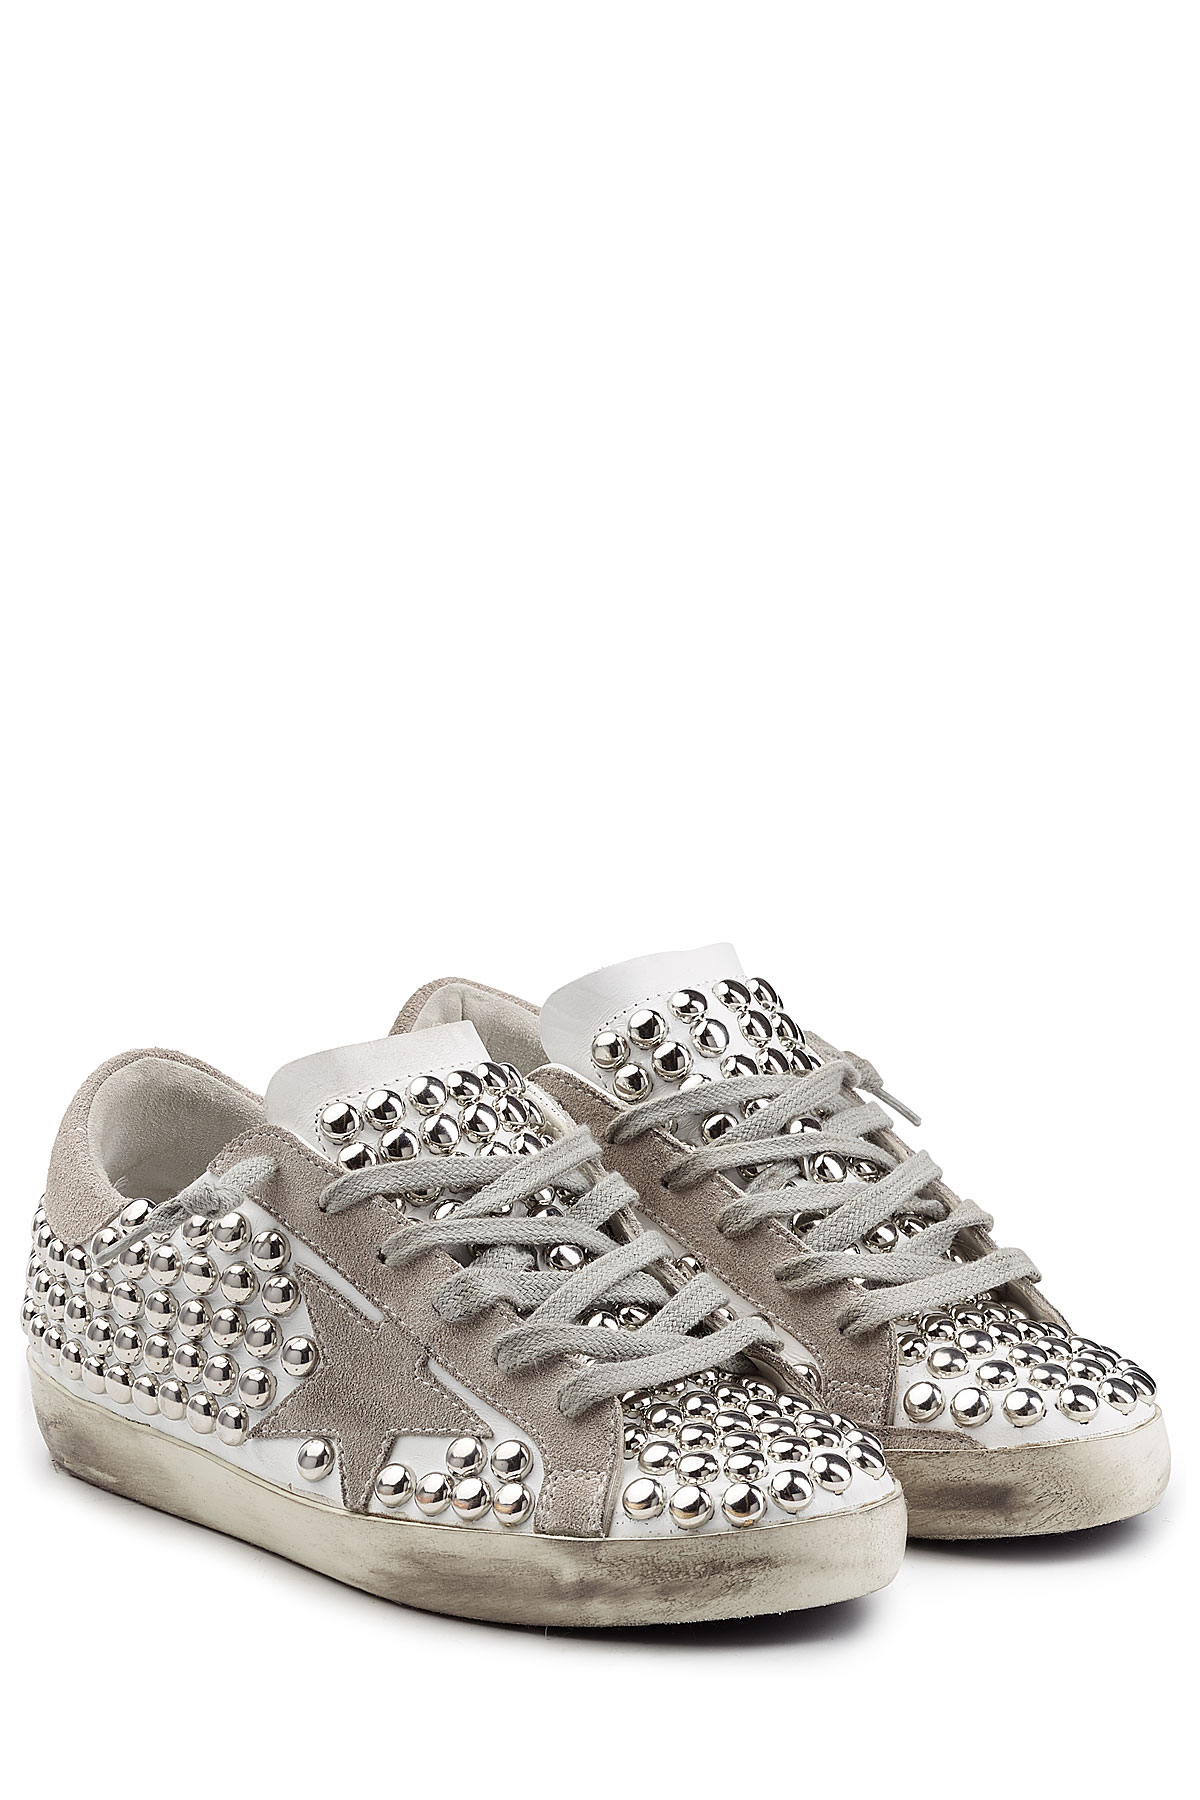 Deluxe Lyst Studded Star Golden And Brand Super Leather Goose 4rrEwp